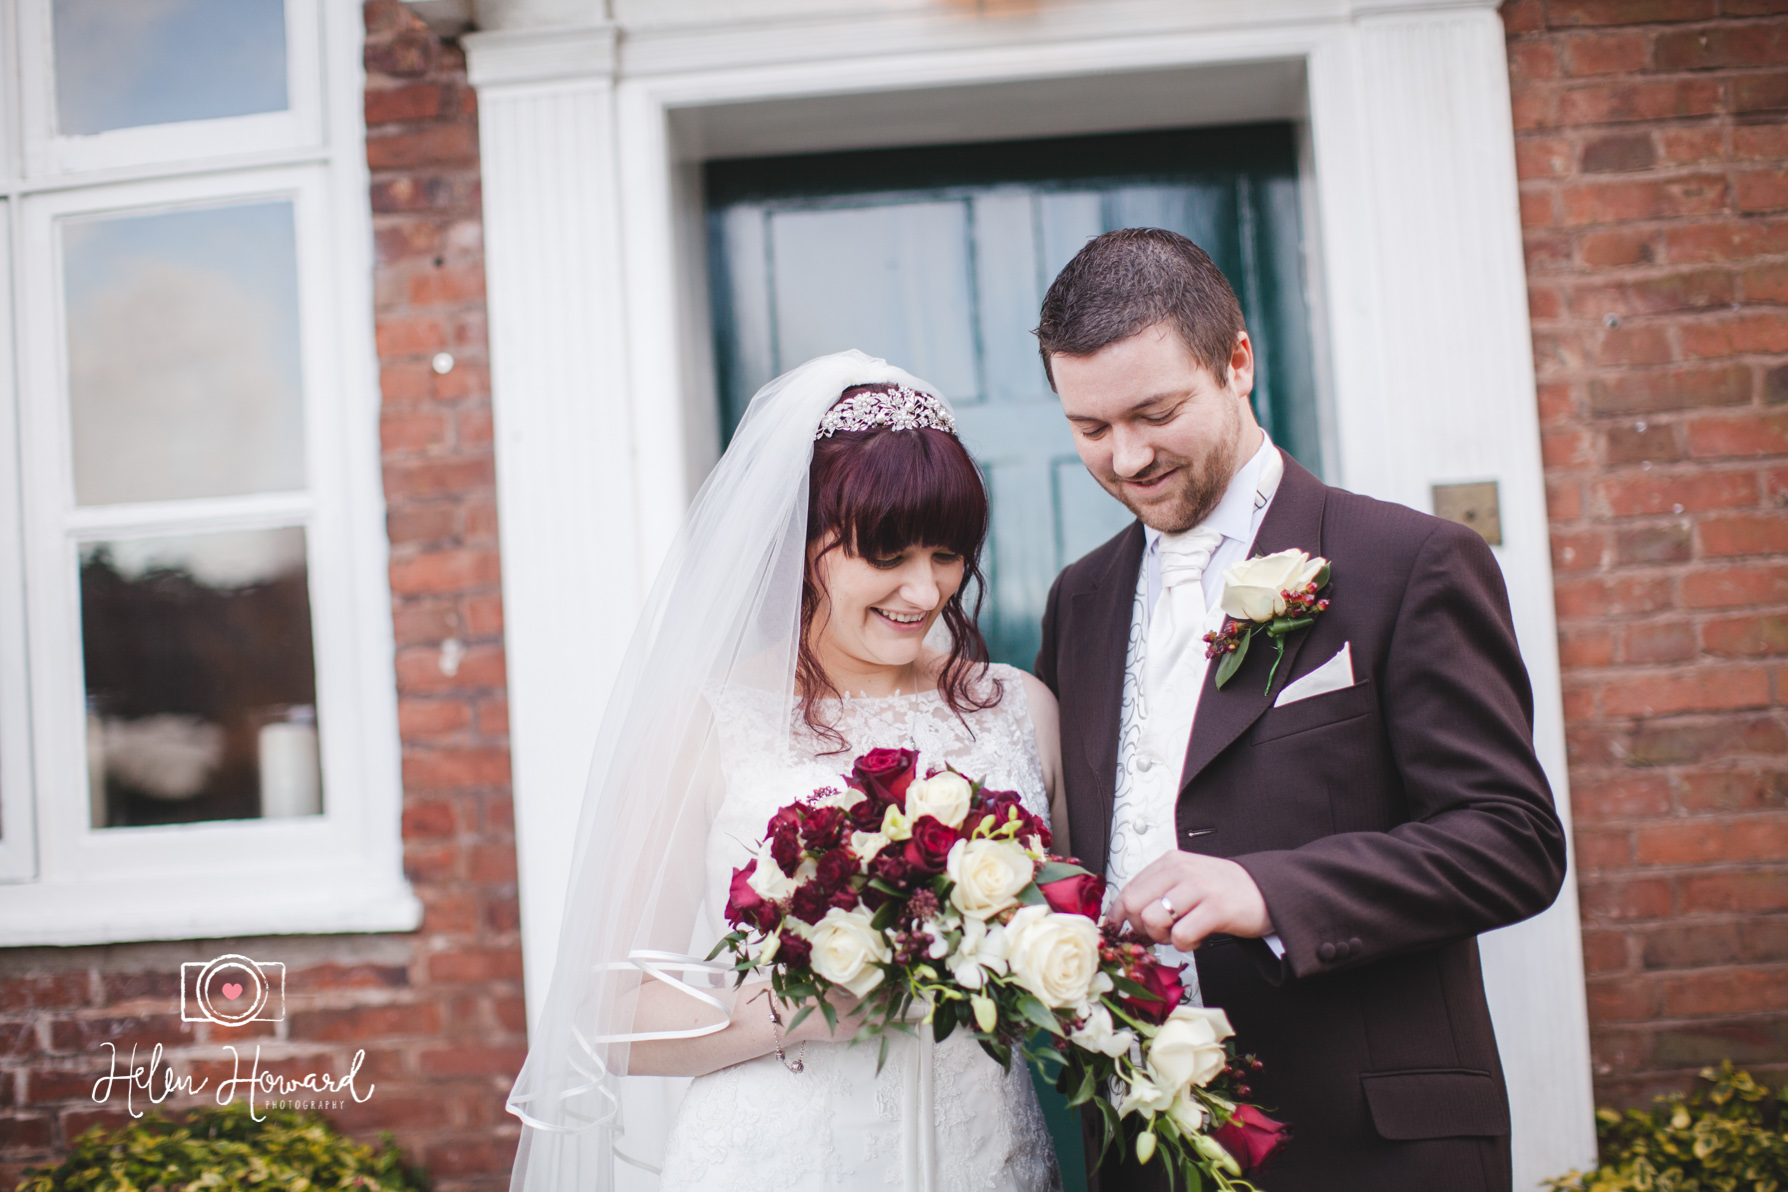 A bride and Groom at The Moat House in Acton Trussell